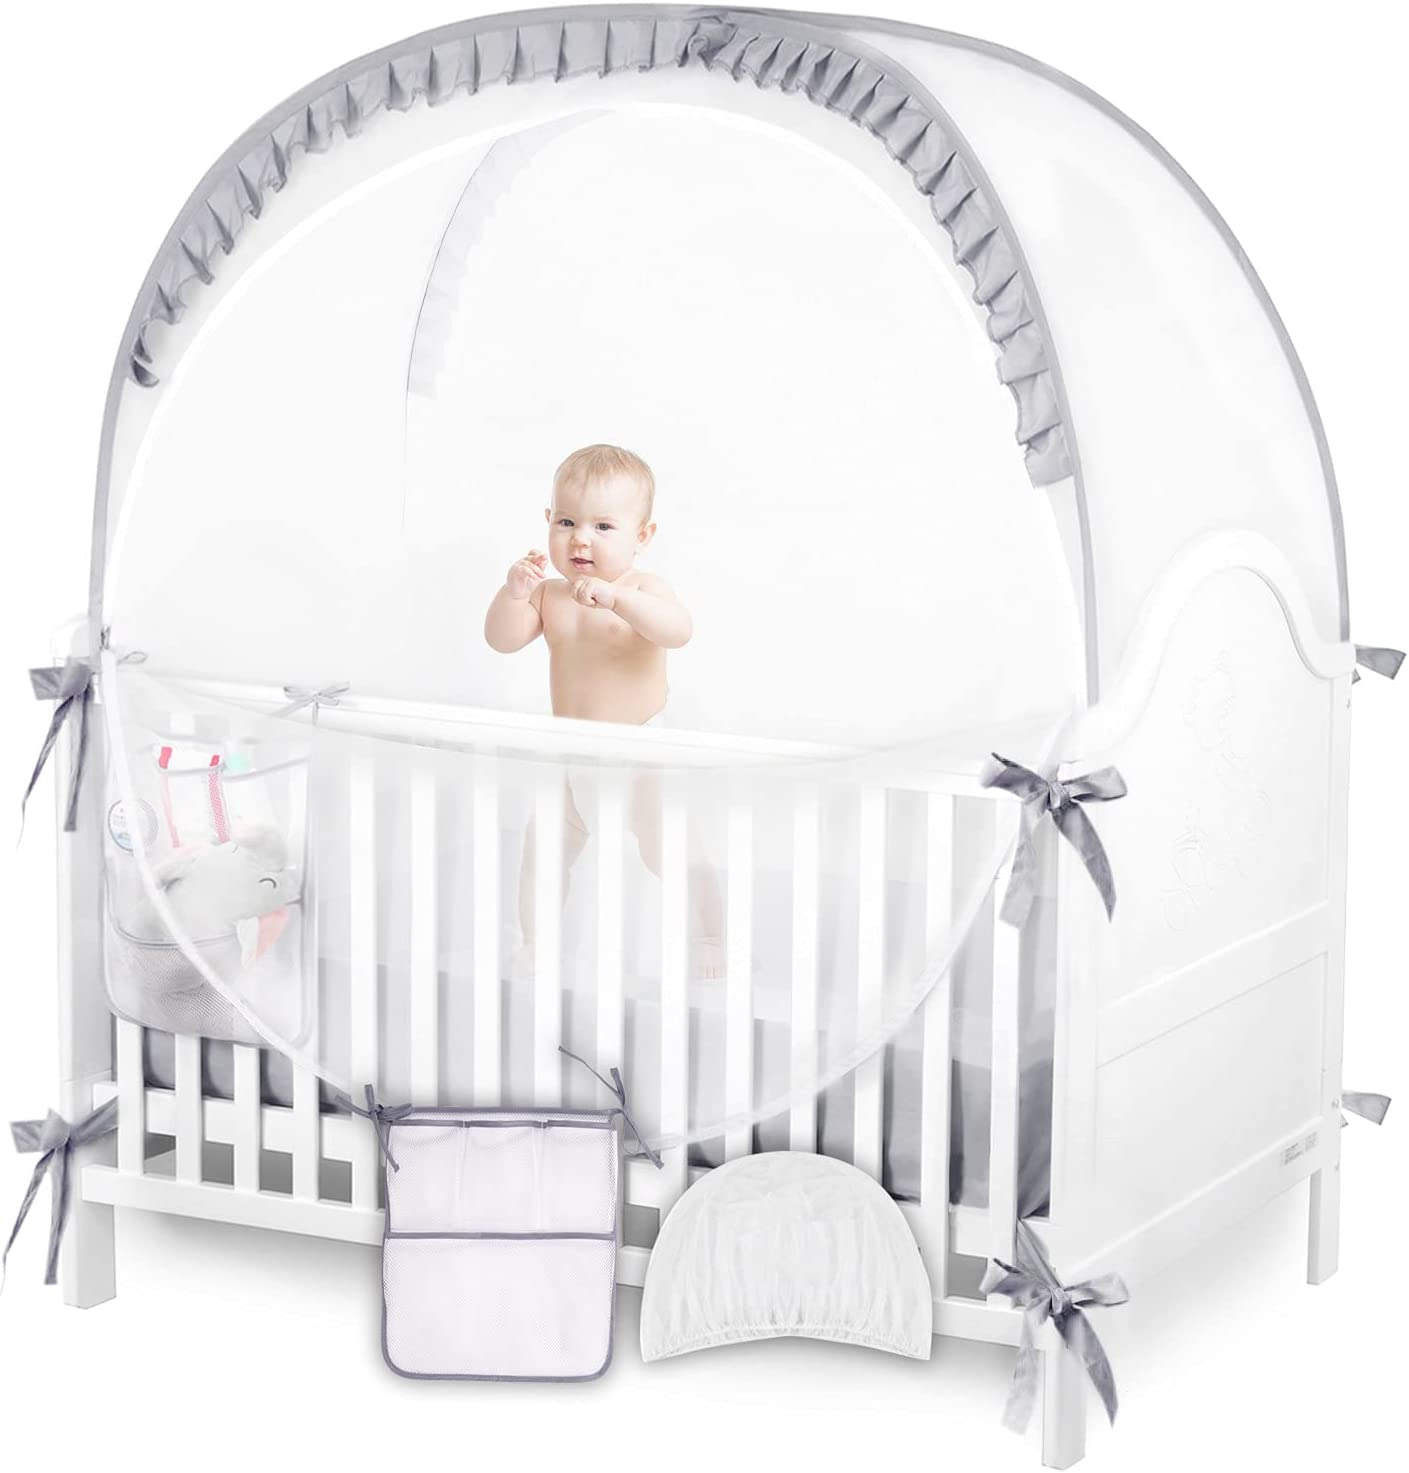 ZXPLO Baby Safety Pop Up Tent Mesh Cover, Crib Net to Keep Toddler in, with Stroller Mosquito Netting (Gray)